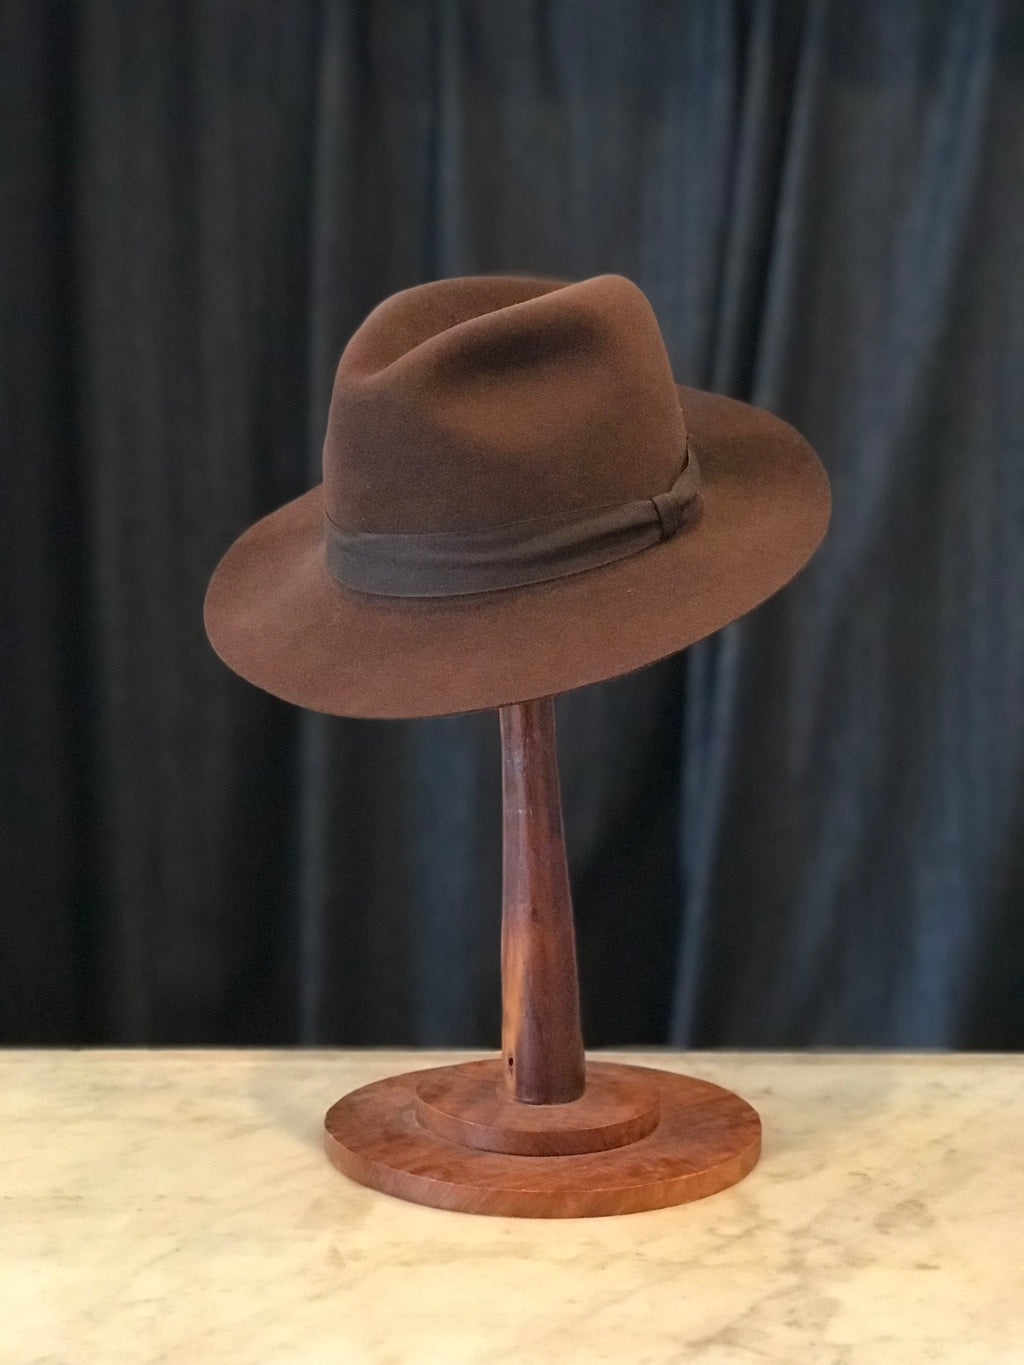 Dark Brown Le Cheval fur felt fedora size 6 7/8